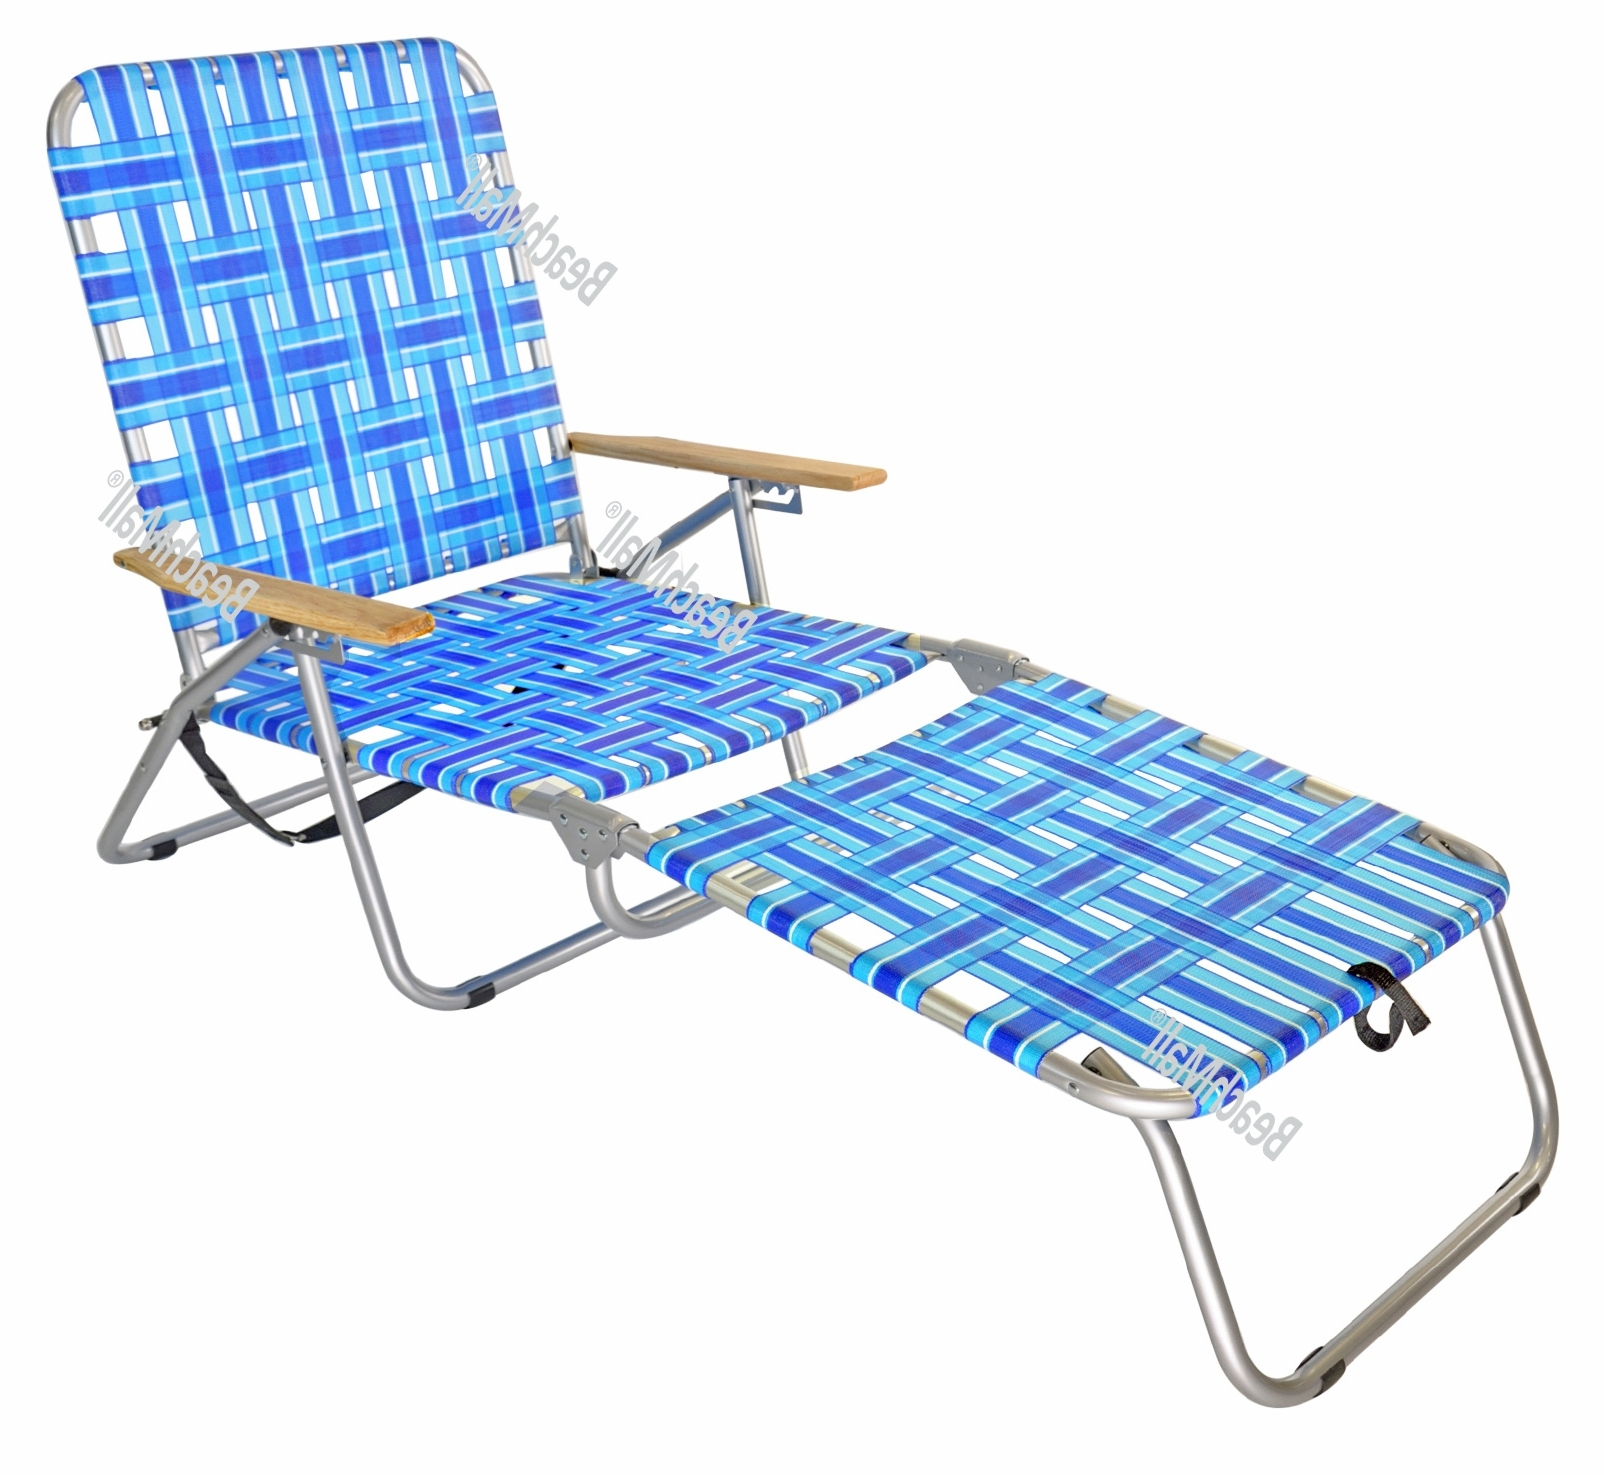 Chaise Lounge Chairs At Kohls In Widely Used New Patio Chairs At Lowes (35 Photos) (View 6 of 15)